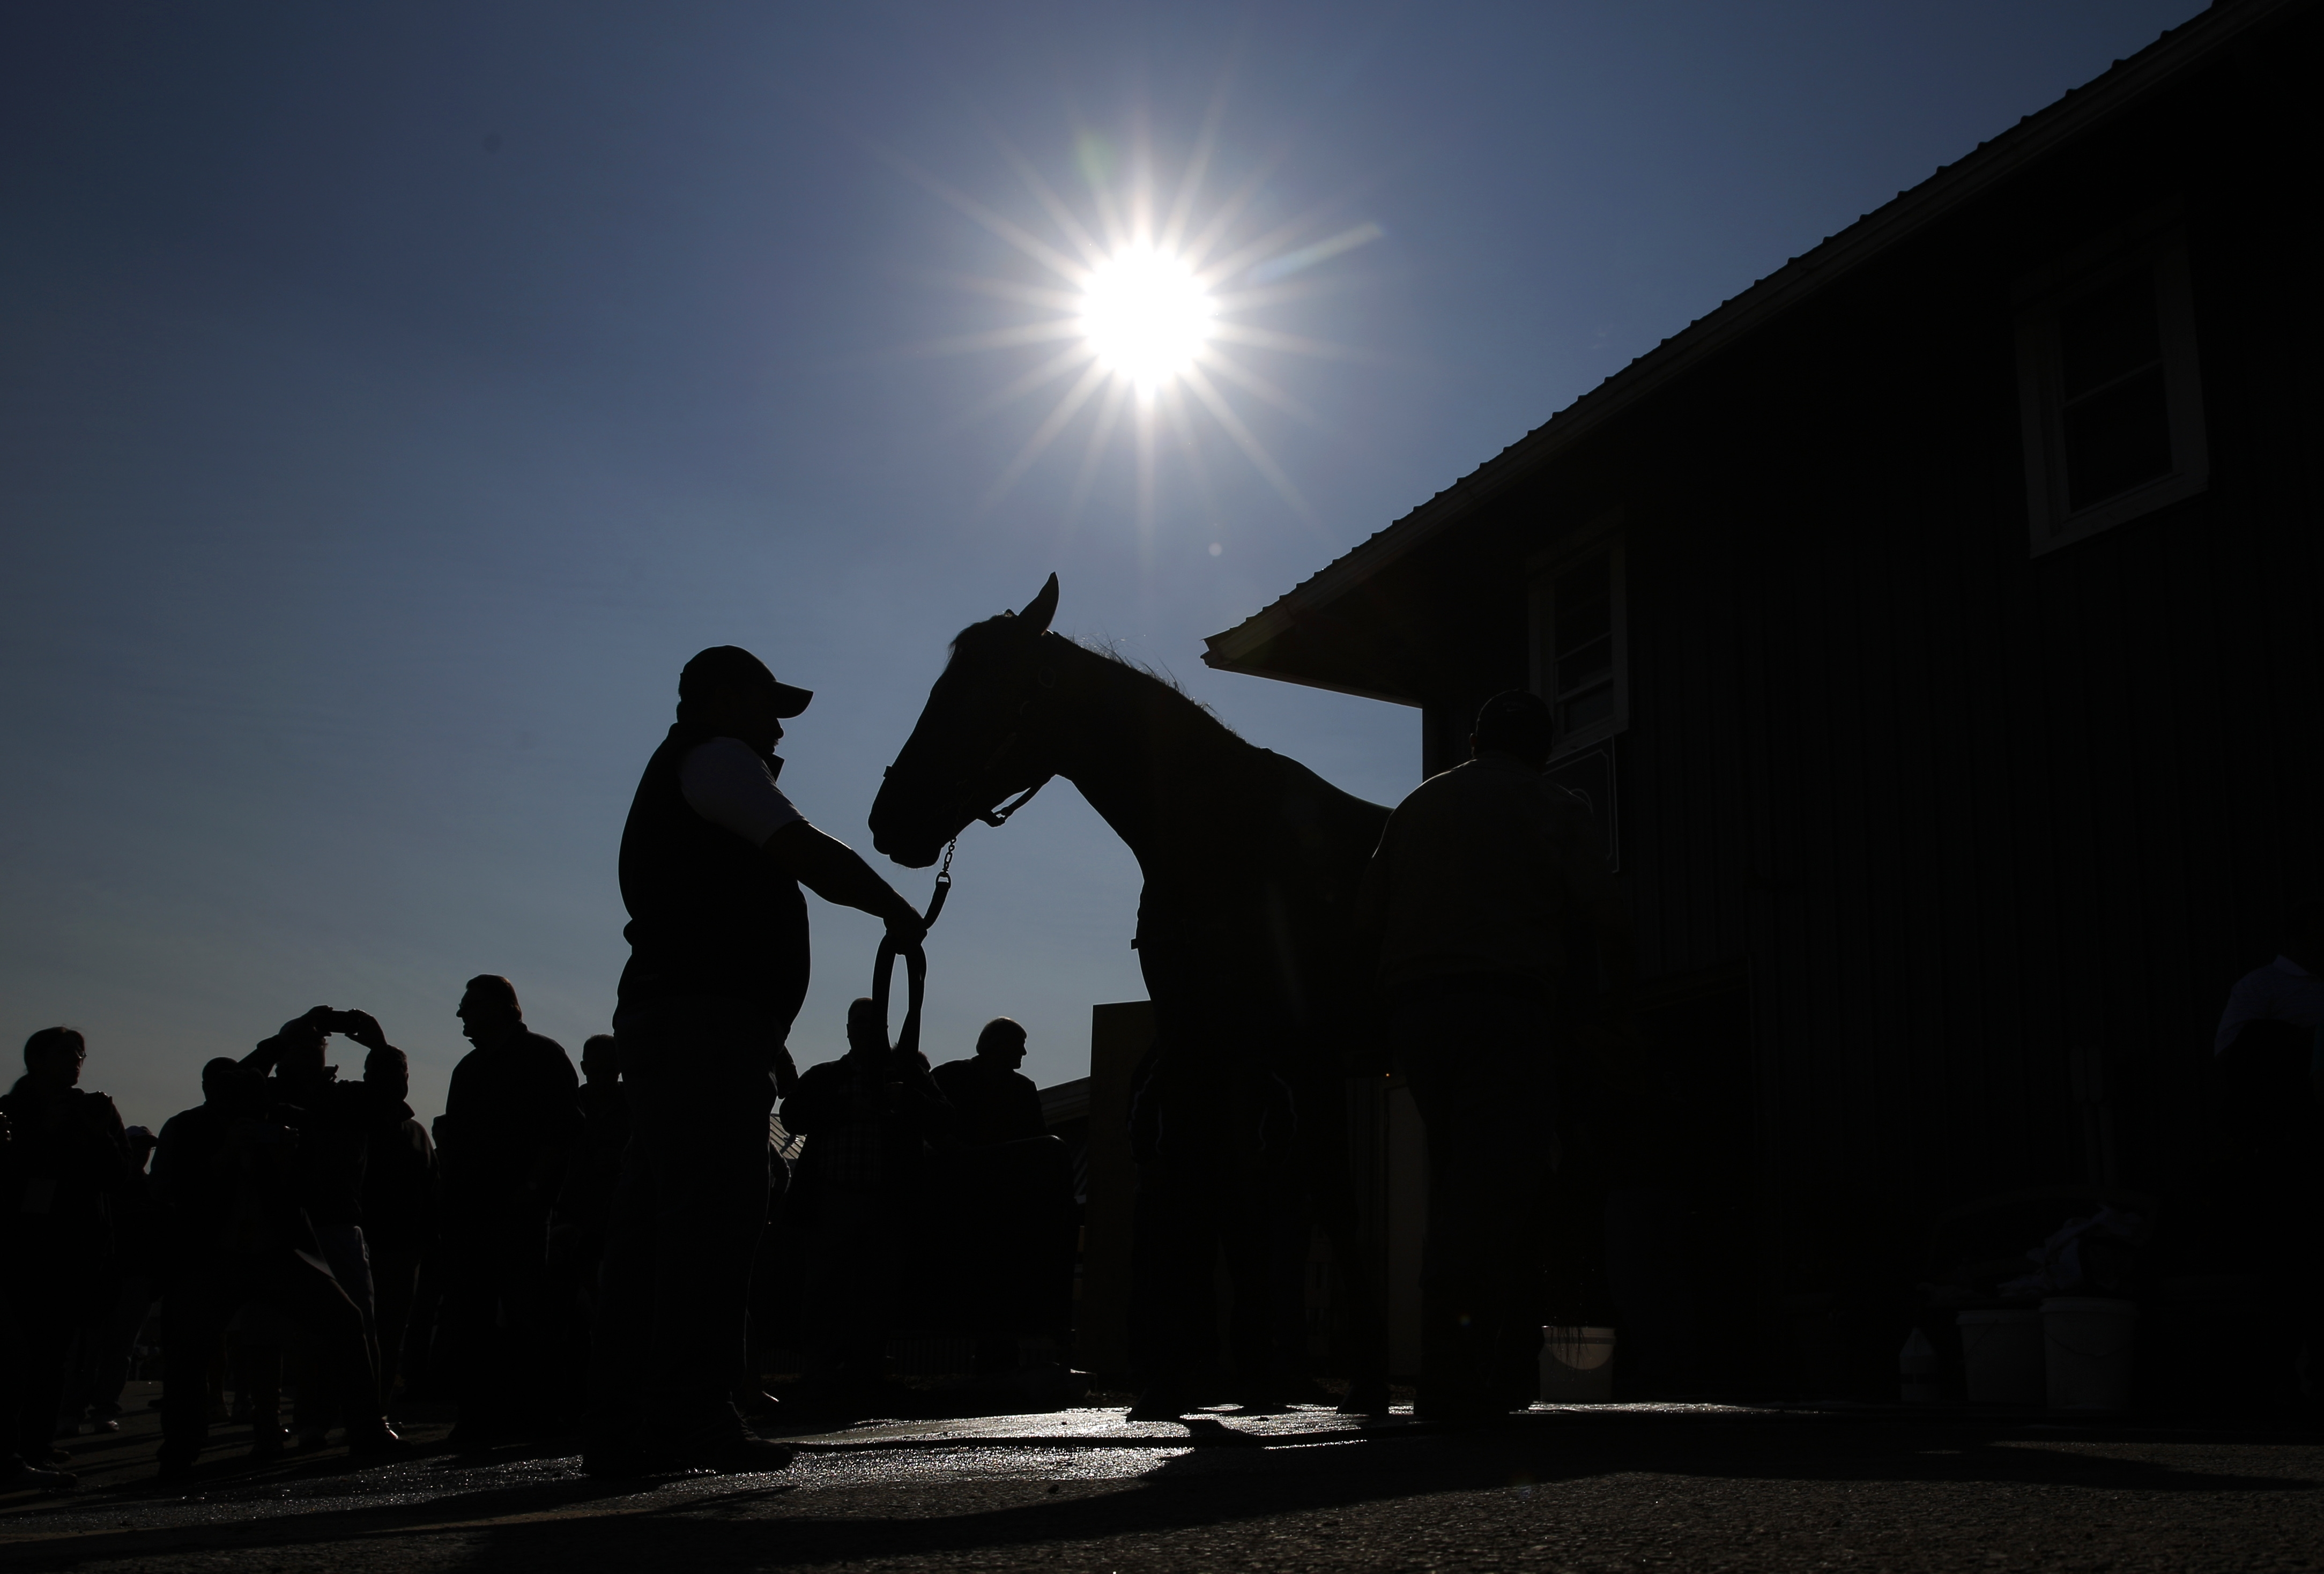 Kentucky Derby winner Nyquist is washed at Pimlico Race Course in Baltimore, Friday, May 20, 2016. The Preakness Stakes horse race is scheduled to take place May 21. (AP Photo/Patrick Semansky)